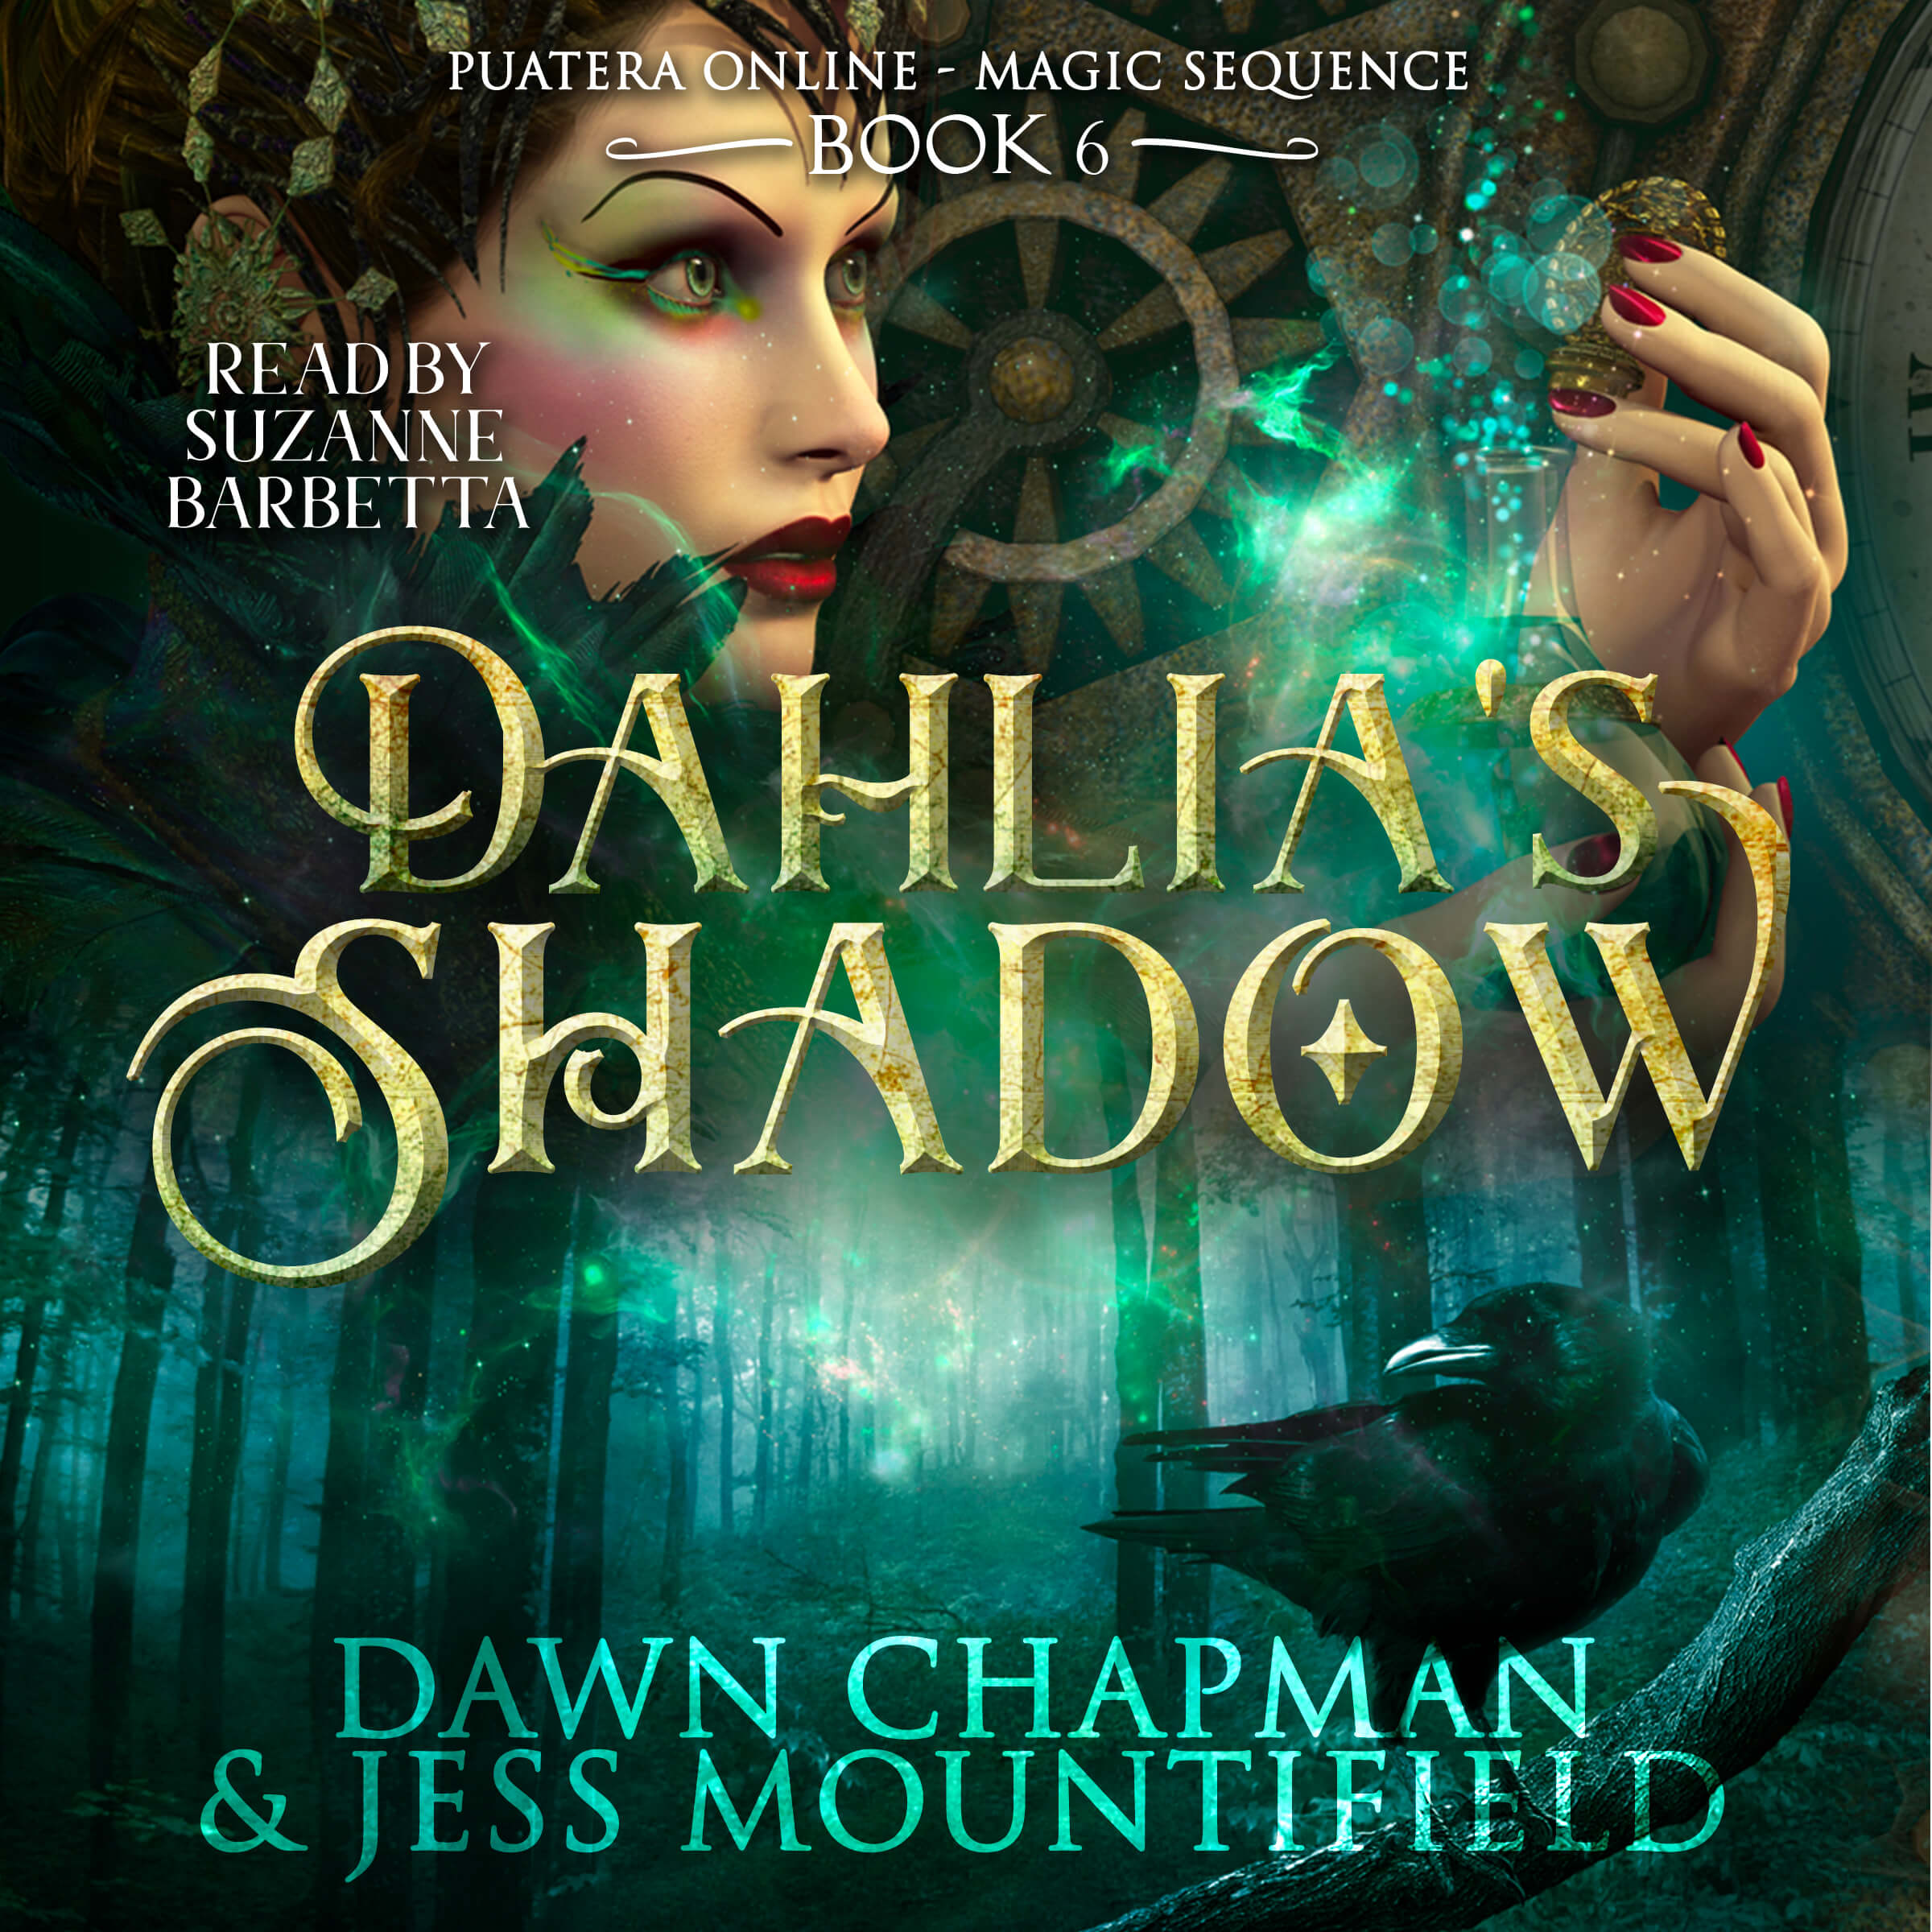 Dahlia's Shadow Audiobook Final